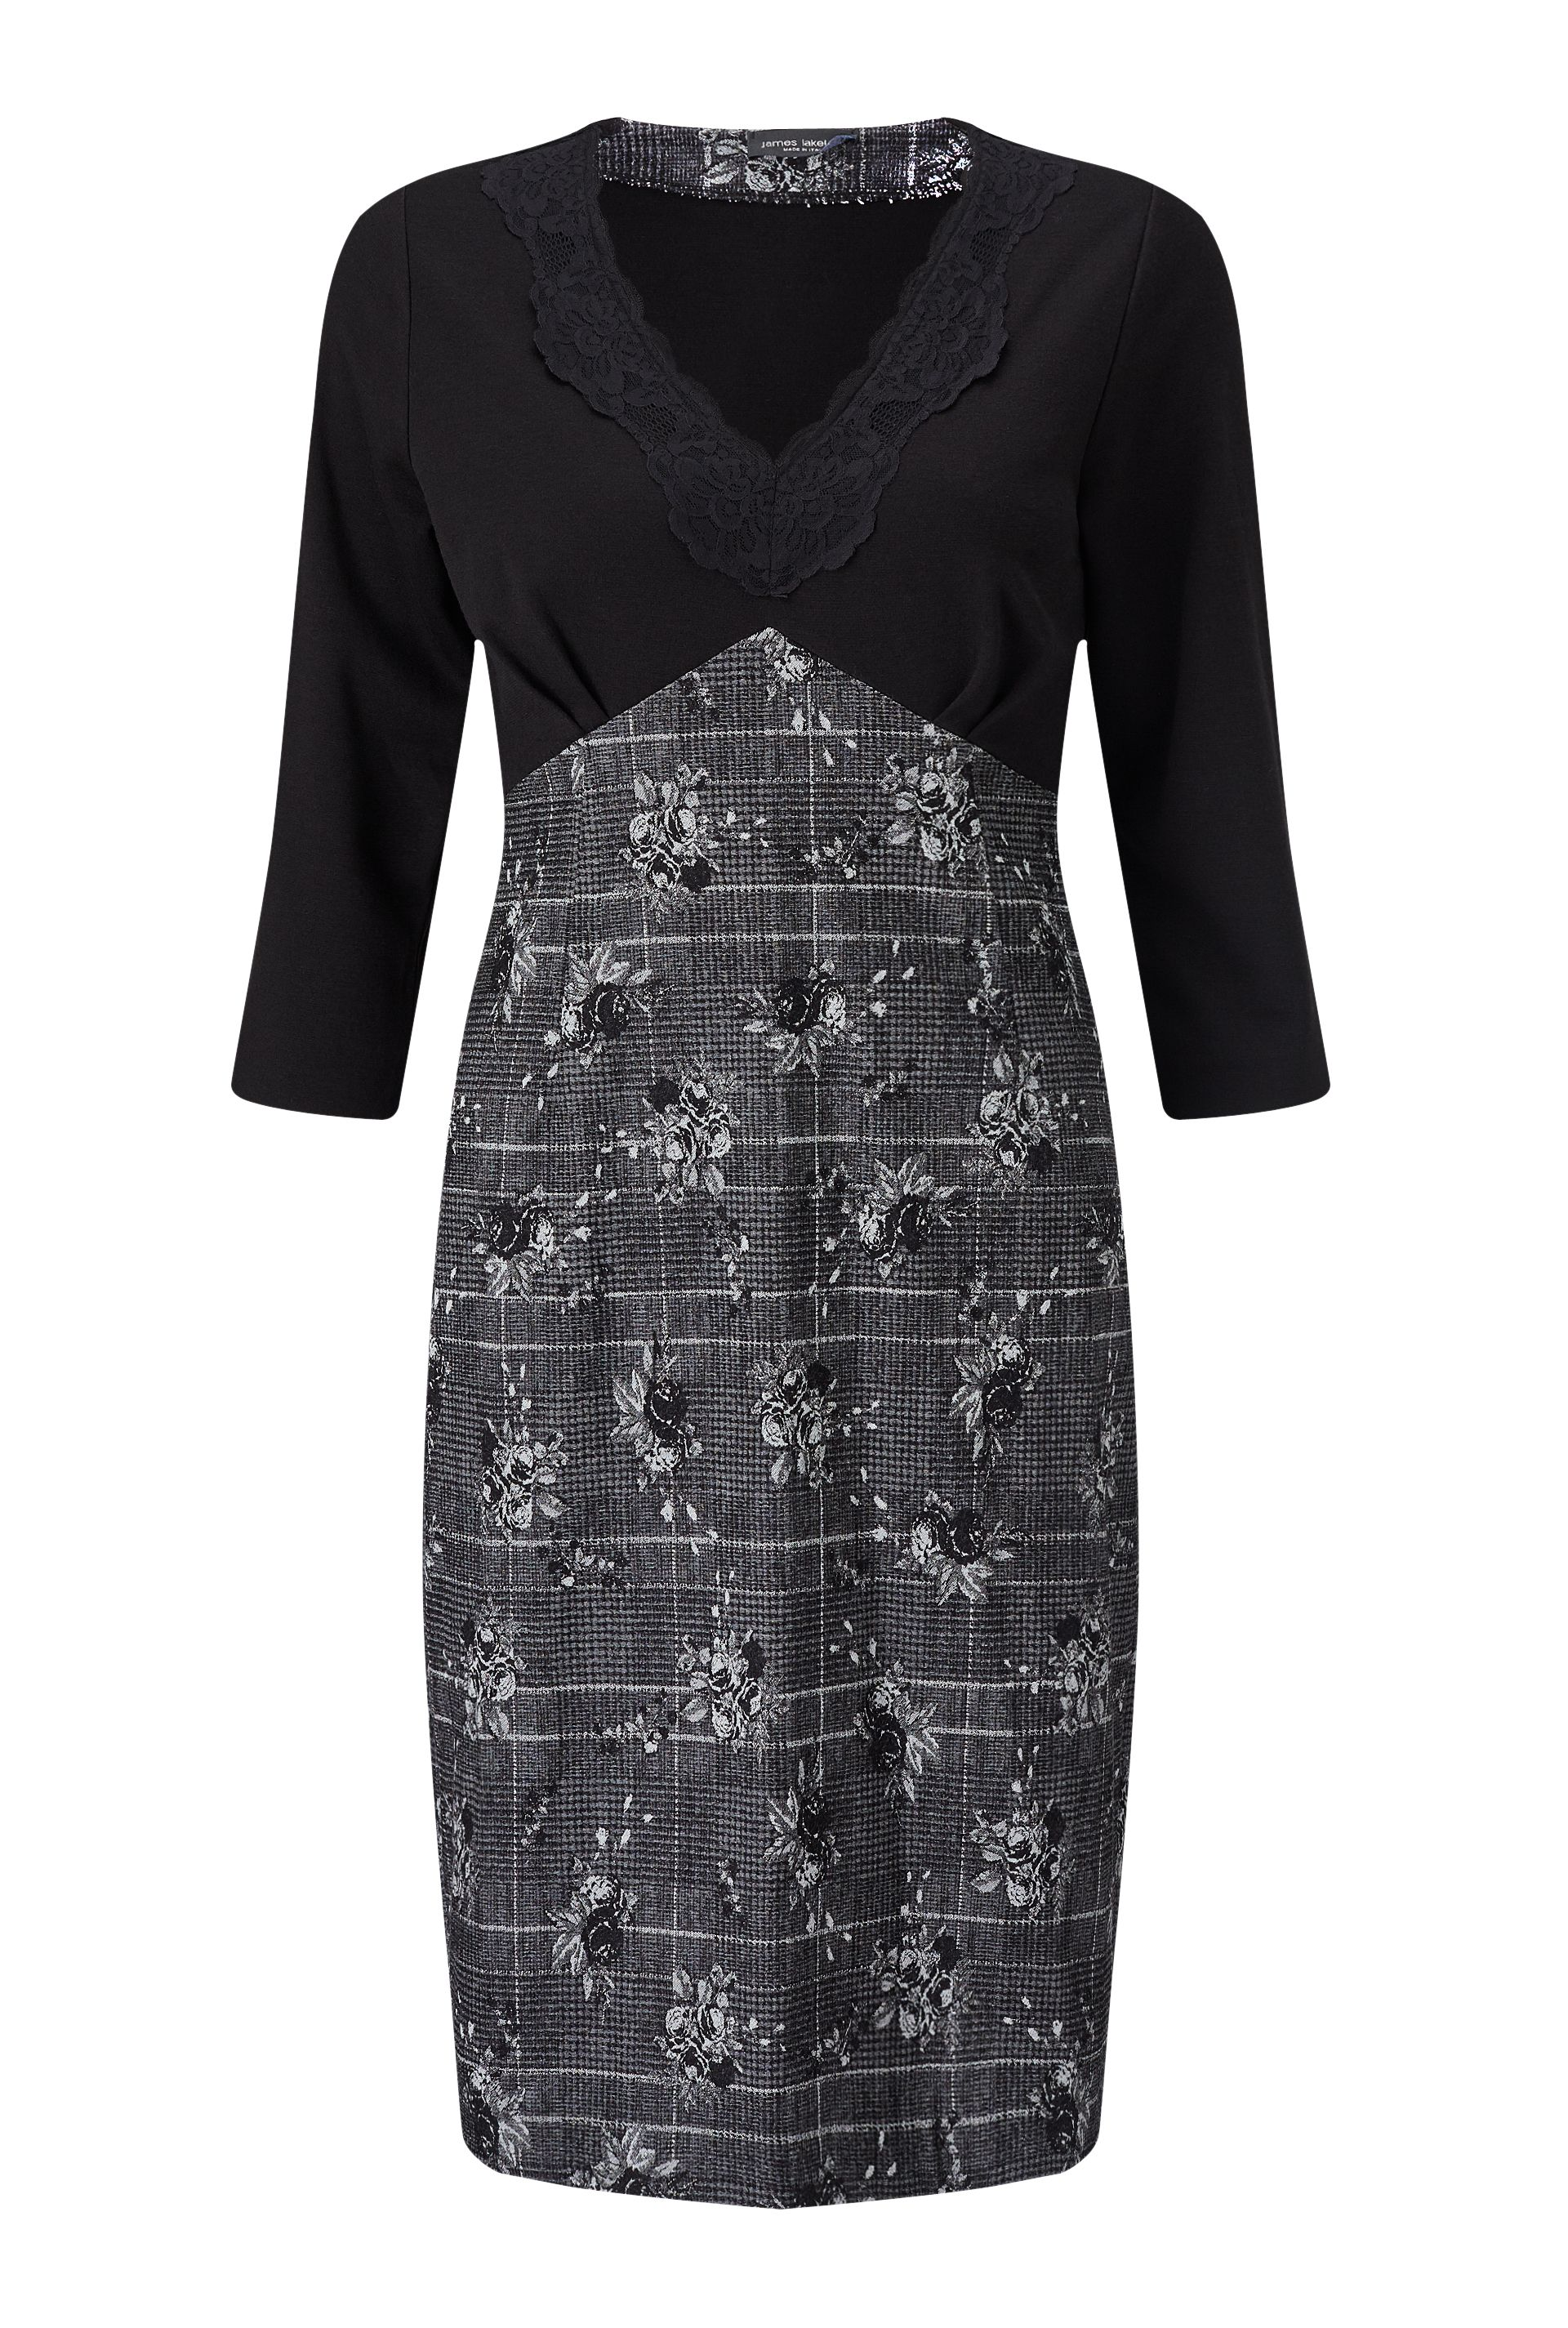 James Lakeland Print Lace Dress, Black